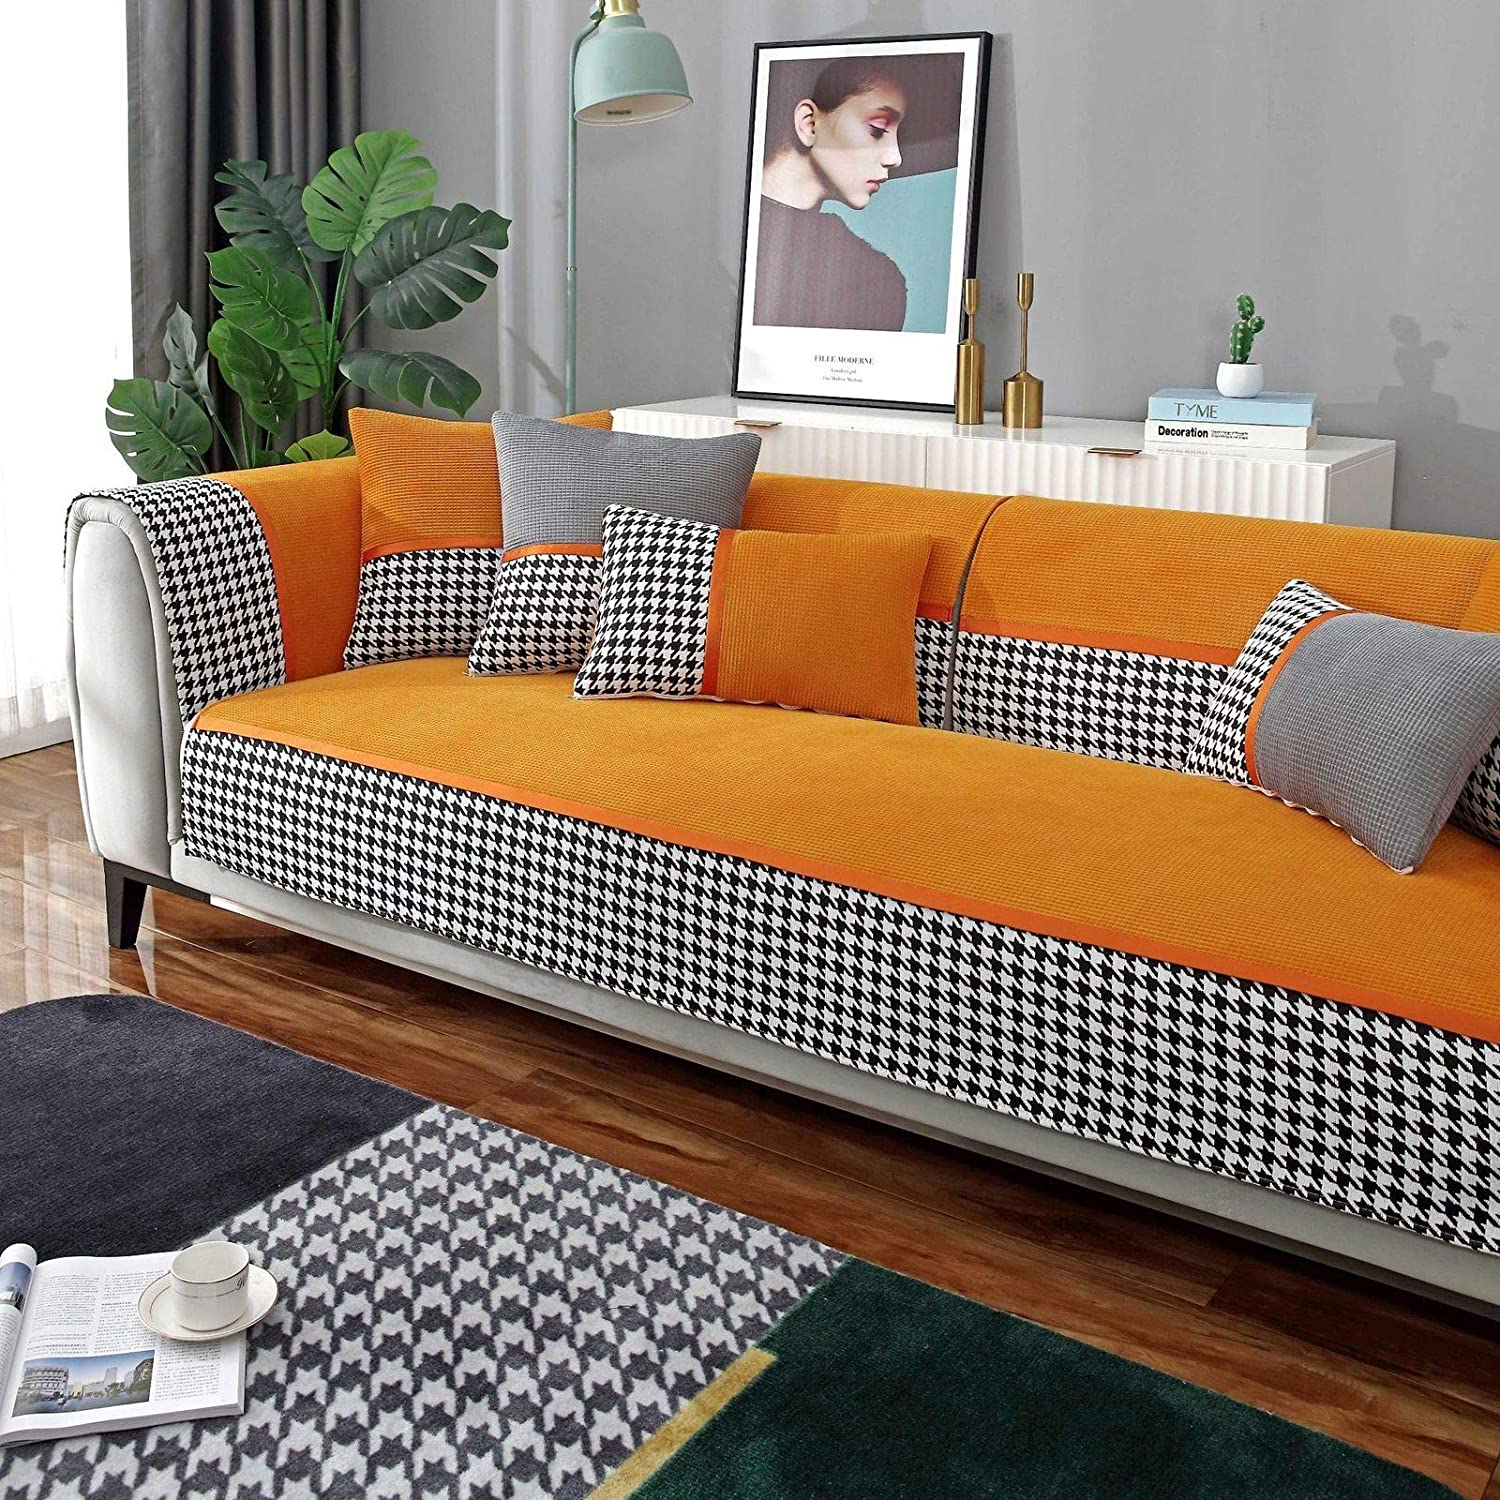 QSCV Living Room Indianapolis Factory outlet Mall Sofa Cover Sli Jacquard Couch Velvet